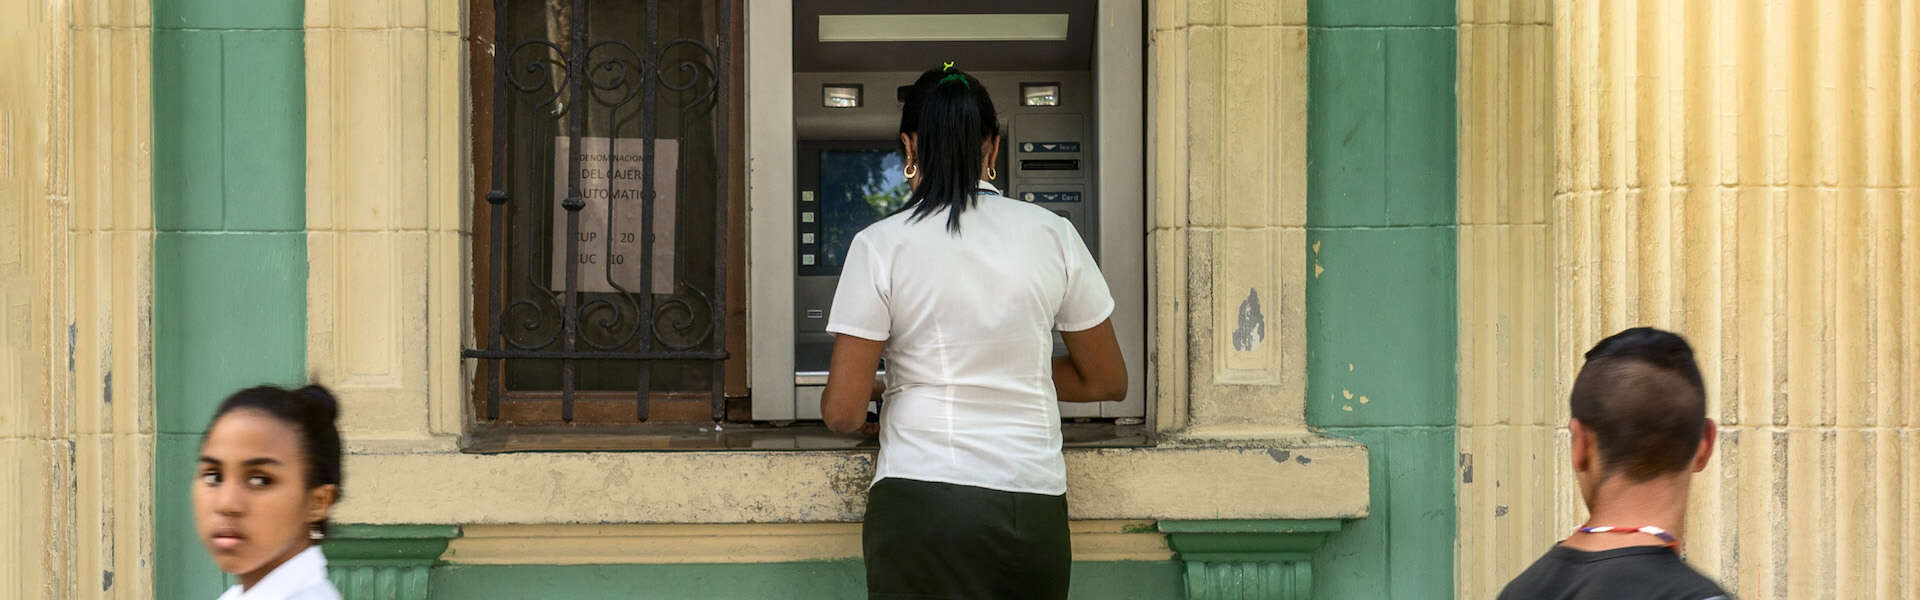 Woman using ATM in Cuba